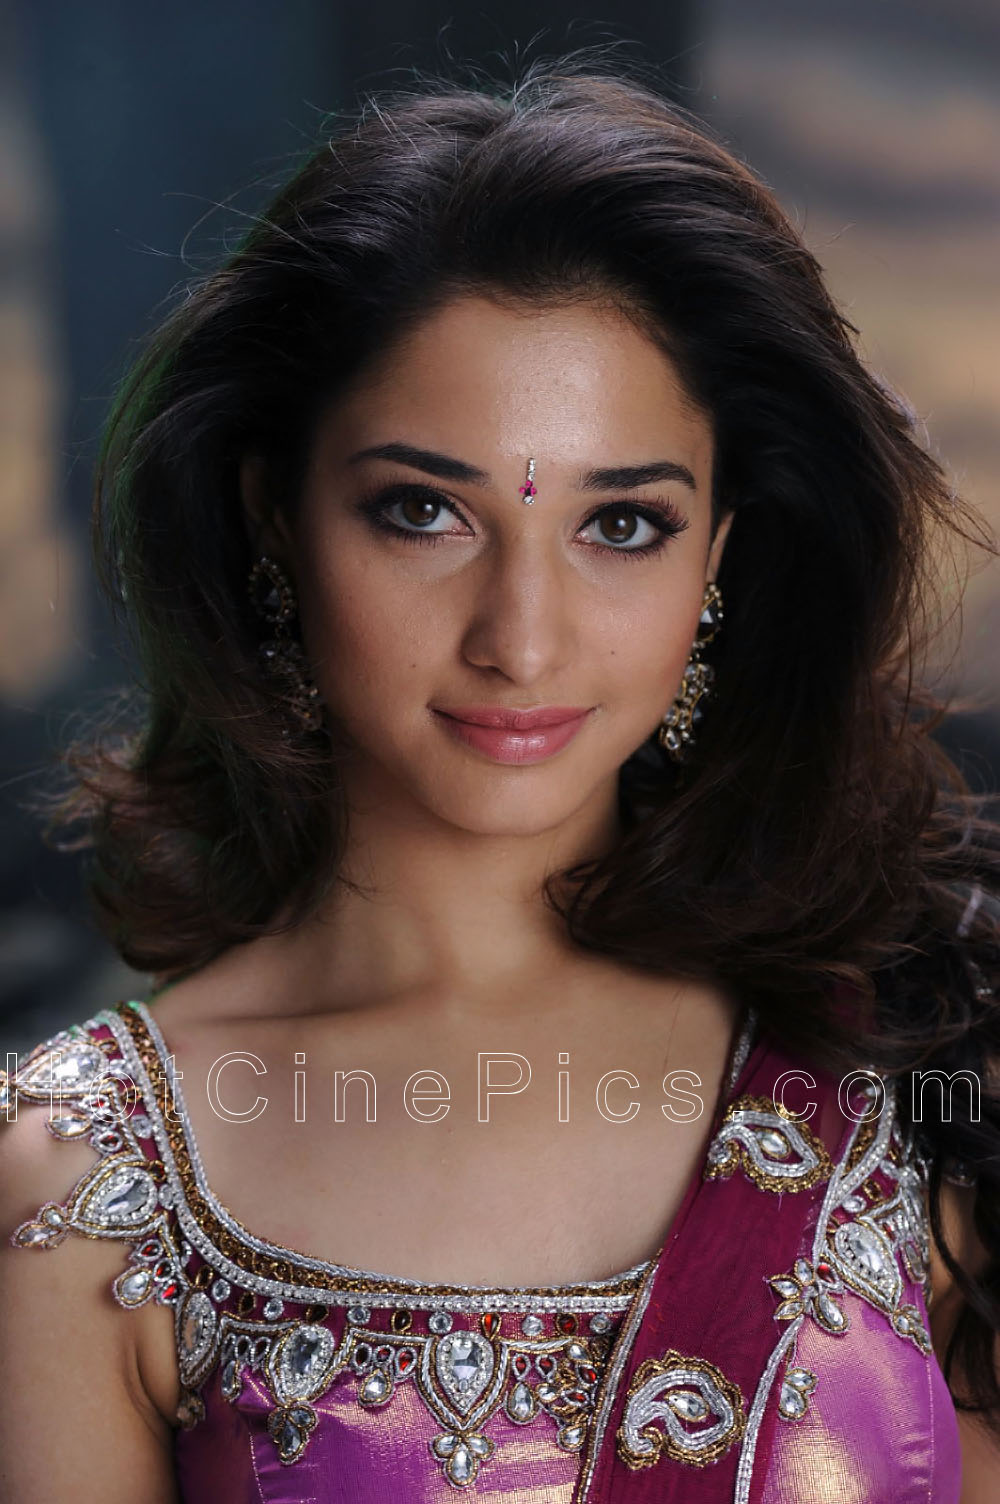 Tamanna Photo Gallery: CINECORNER: Tamanna Spicy Photo Gallery